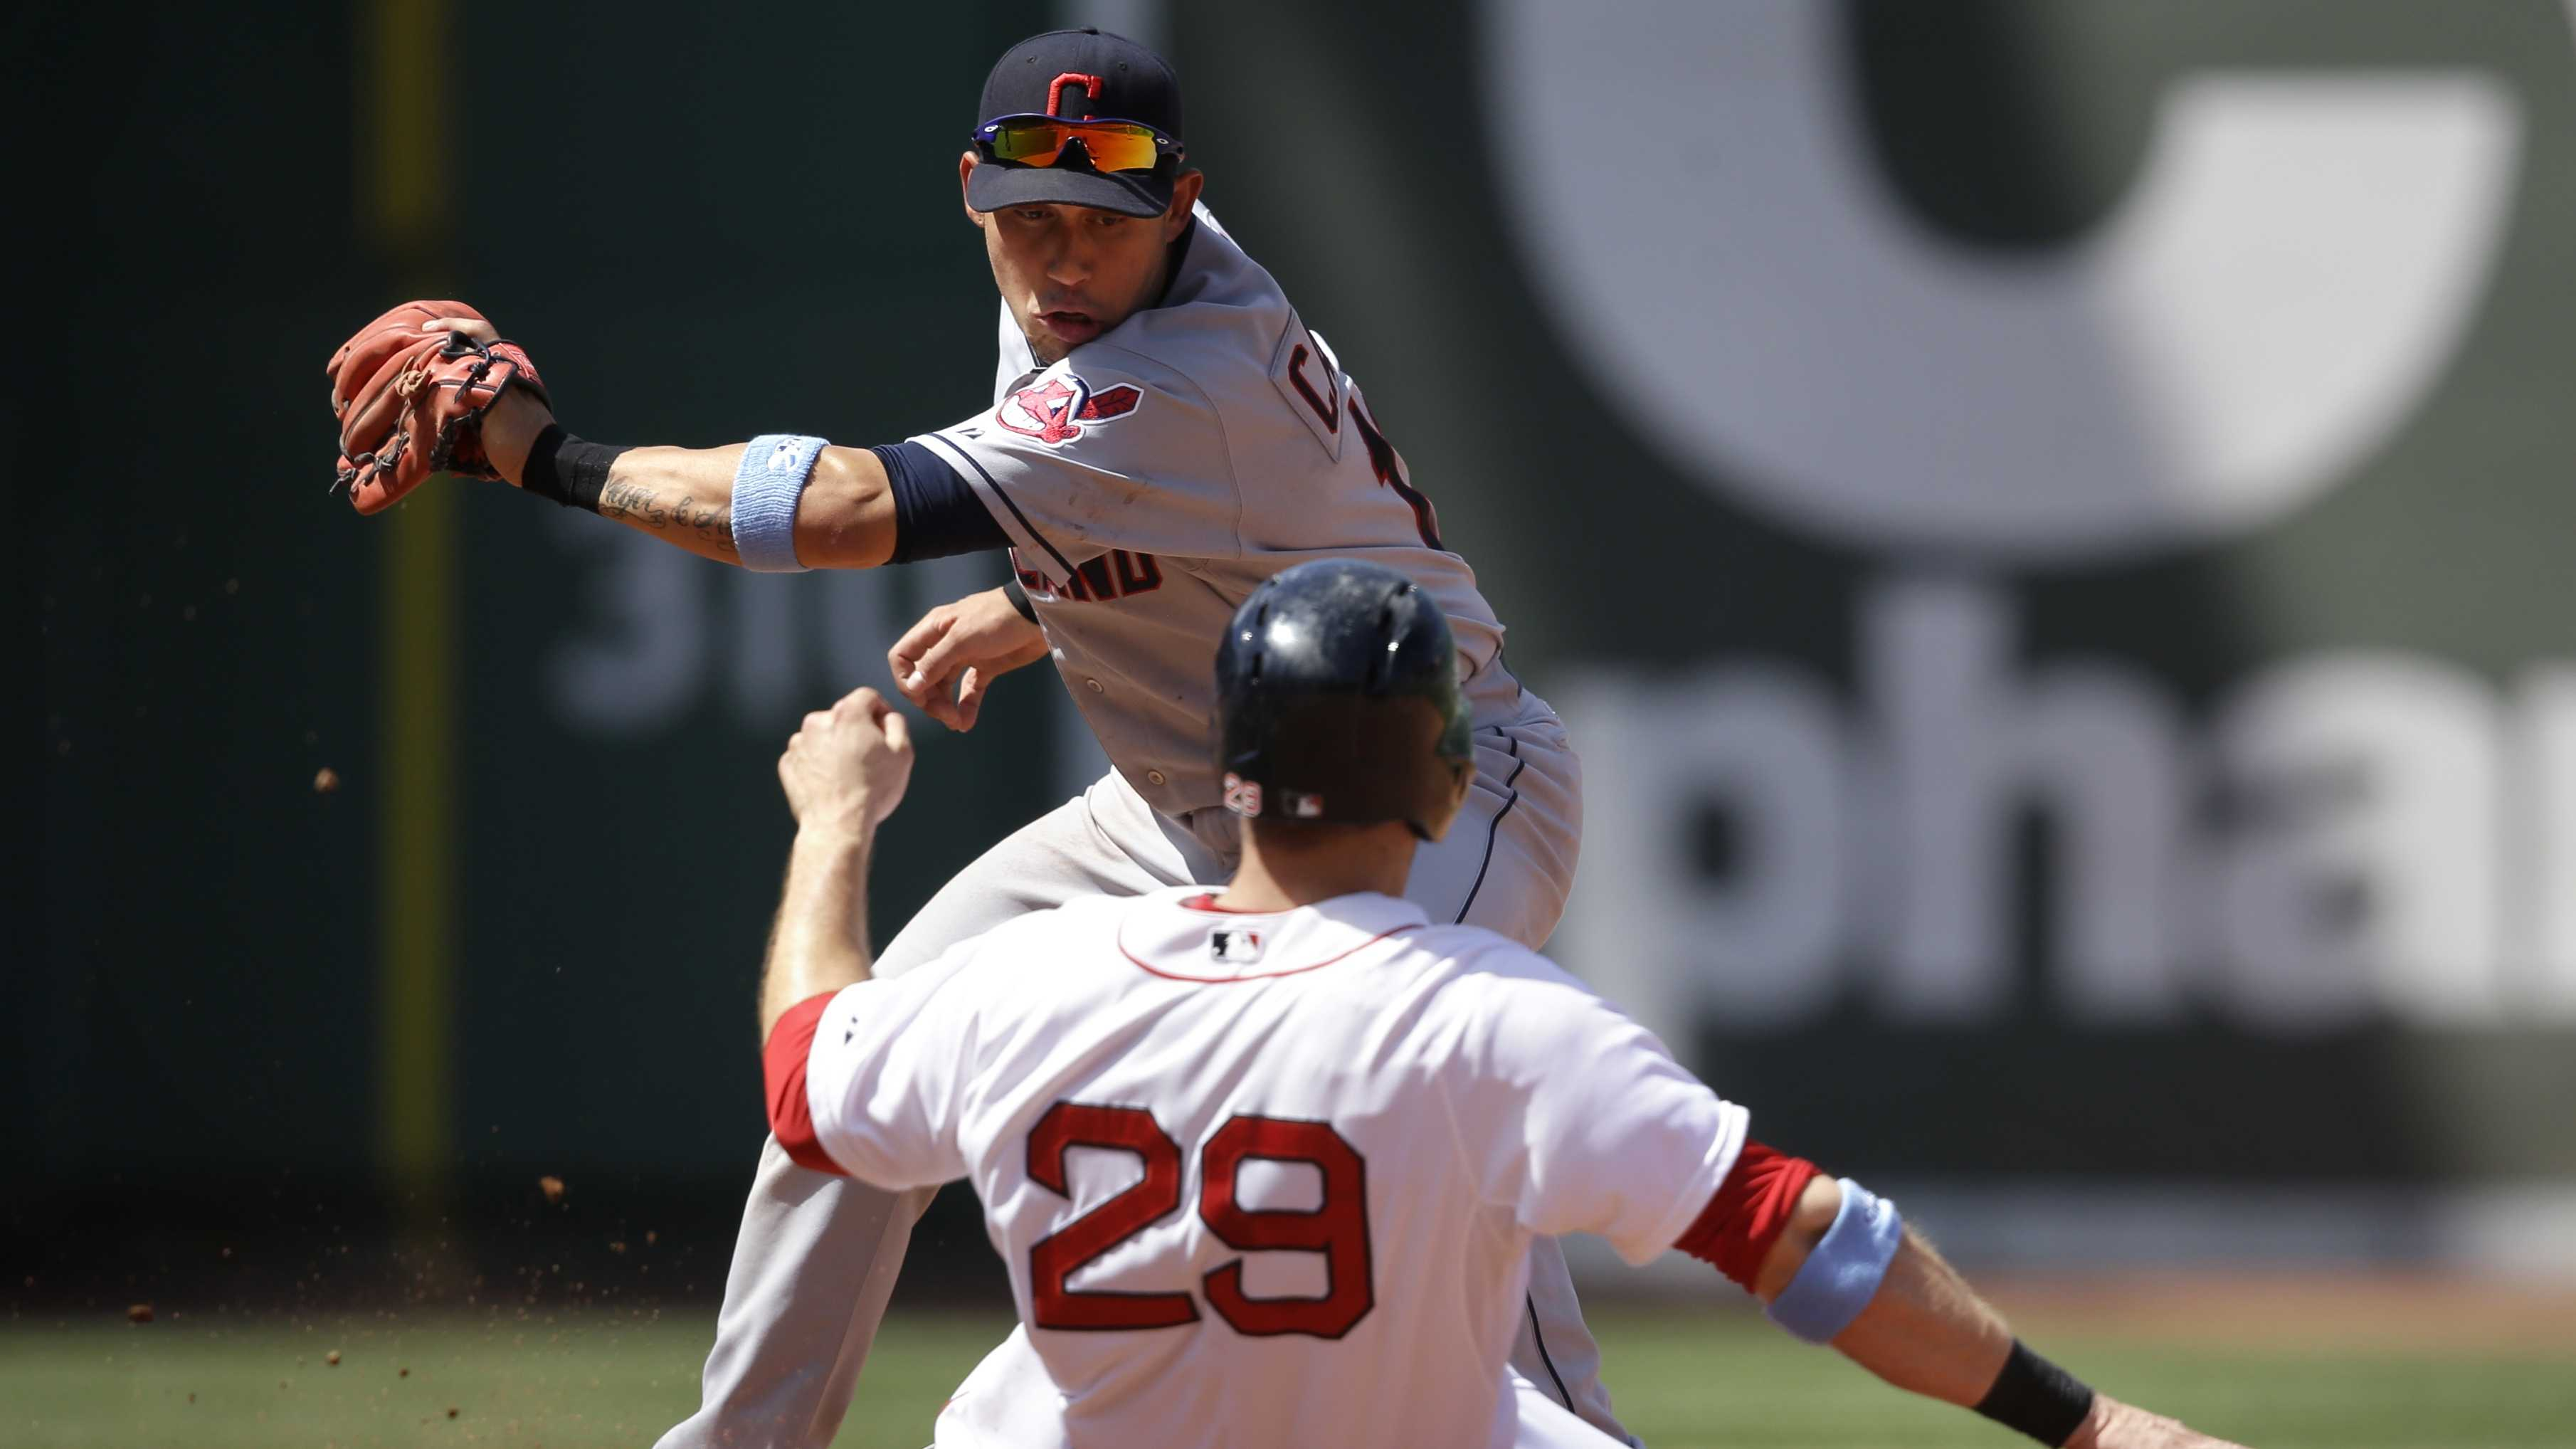 Boston Red Sox's Daniel Nava (29) slides out on a steal attempt as Cleveland Indians shortstop Asdrubal Cabrera, top, tags him in the fourth inning of a baseball game, Sunday, June 15, 2014, in Boston. (AP Photo/Steven Senne)